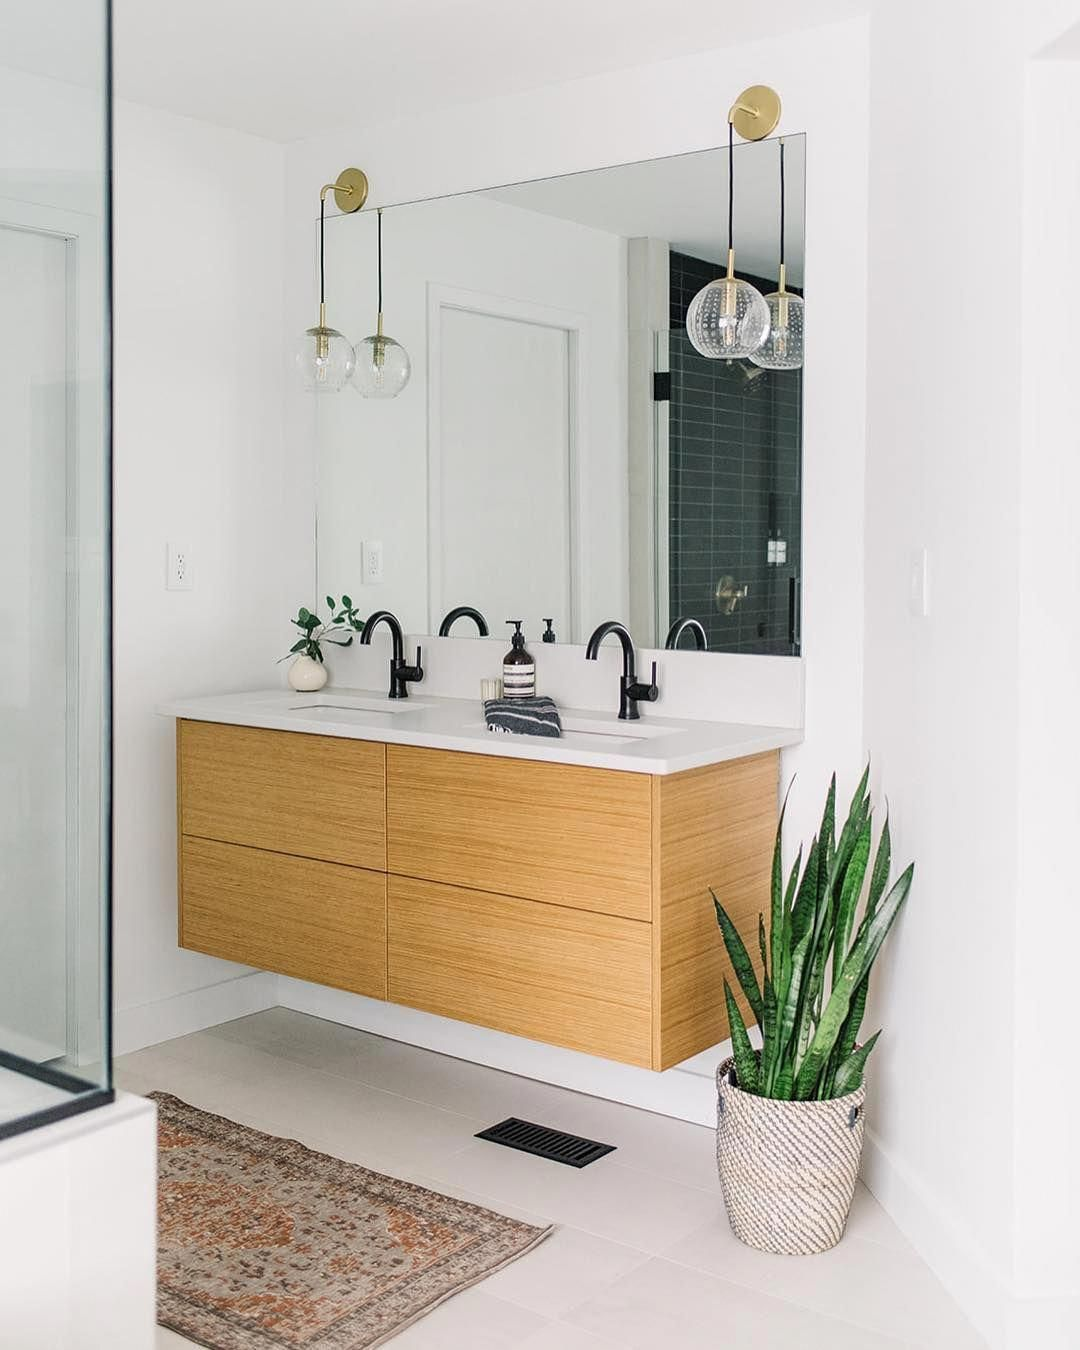 Lovely Shot Of Theduchessonthedrive S Ikea Godmorgon Double Vanity With Our Rift White Oak Drawer Fronts An Ikea Godmorgon Ikea Bathroom Vanity Ikea Bathroom